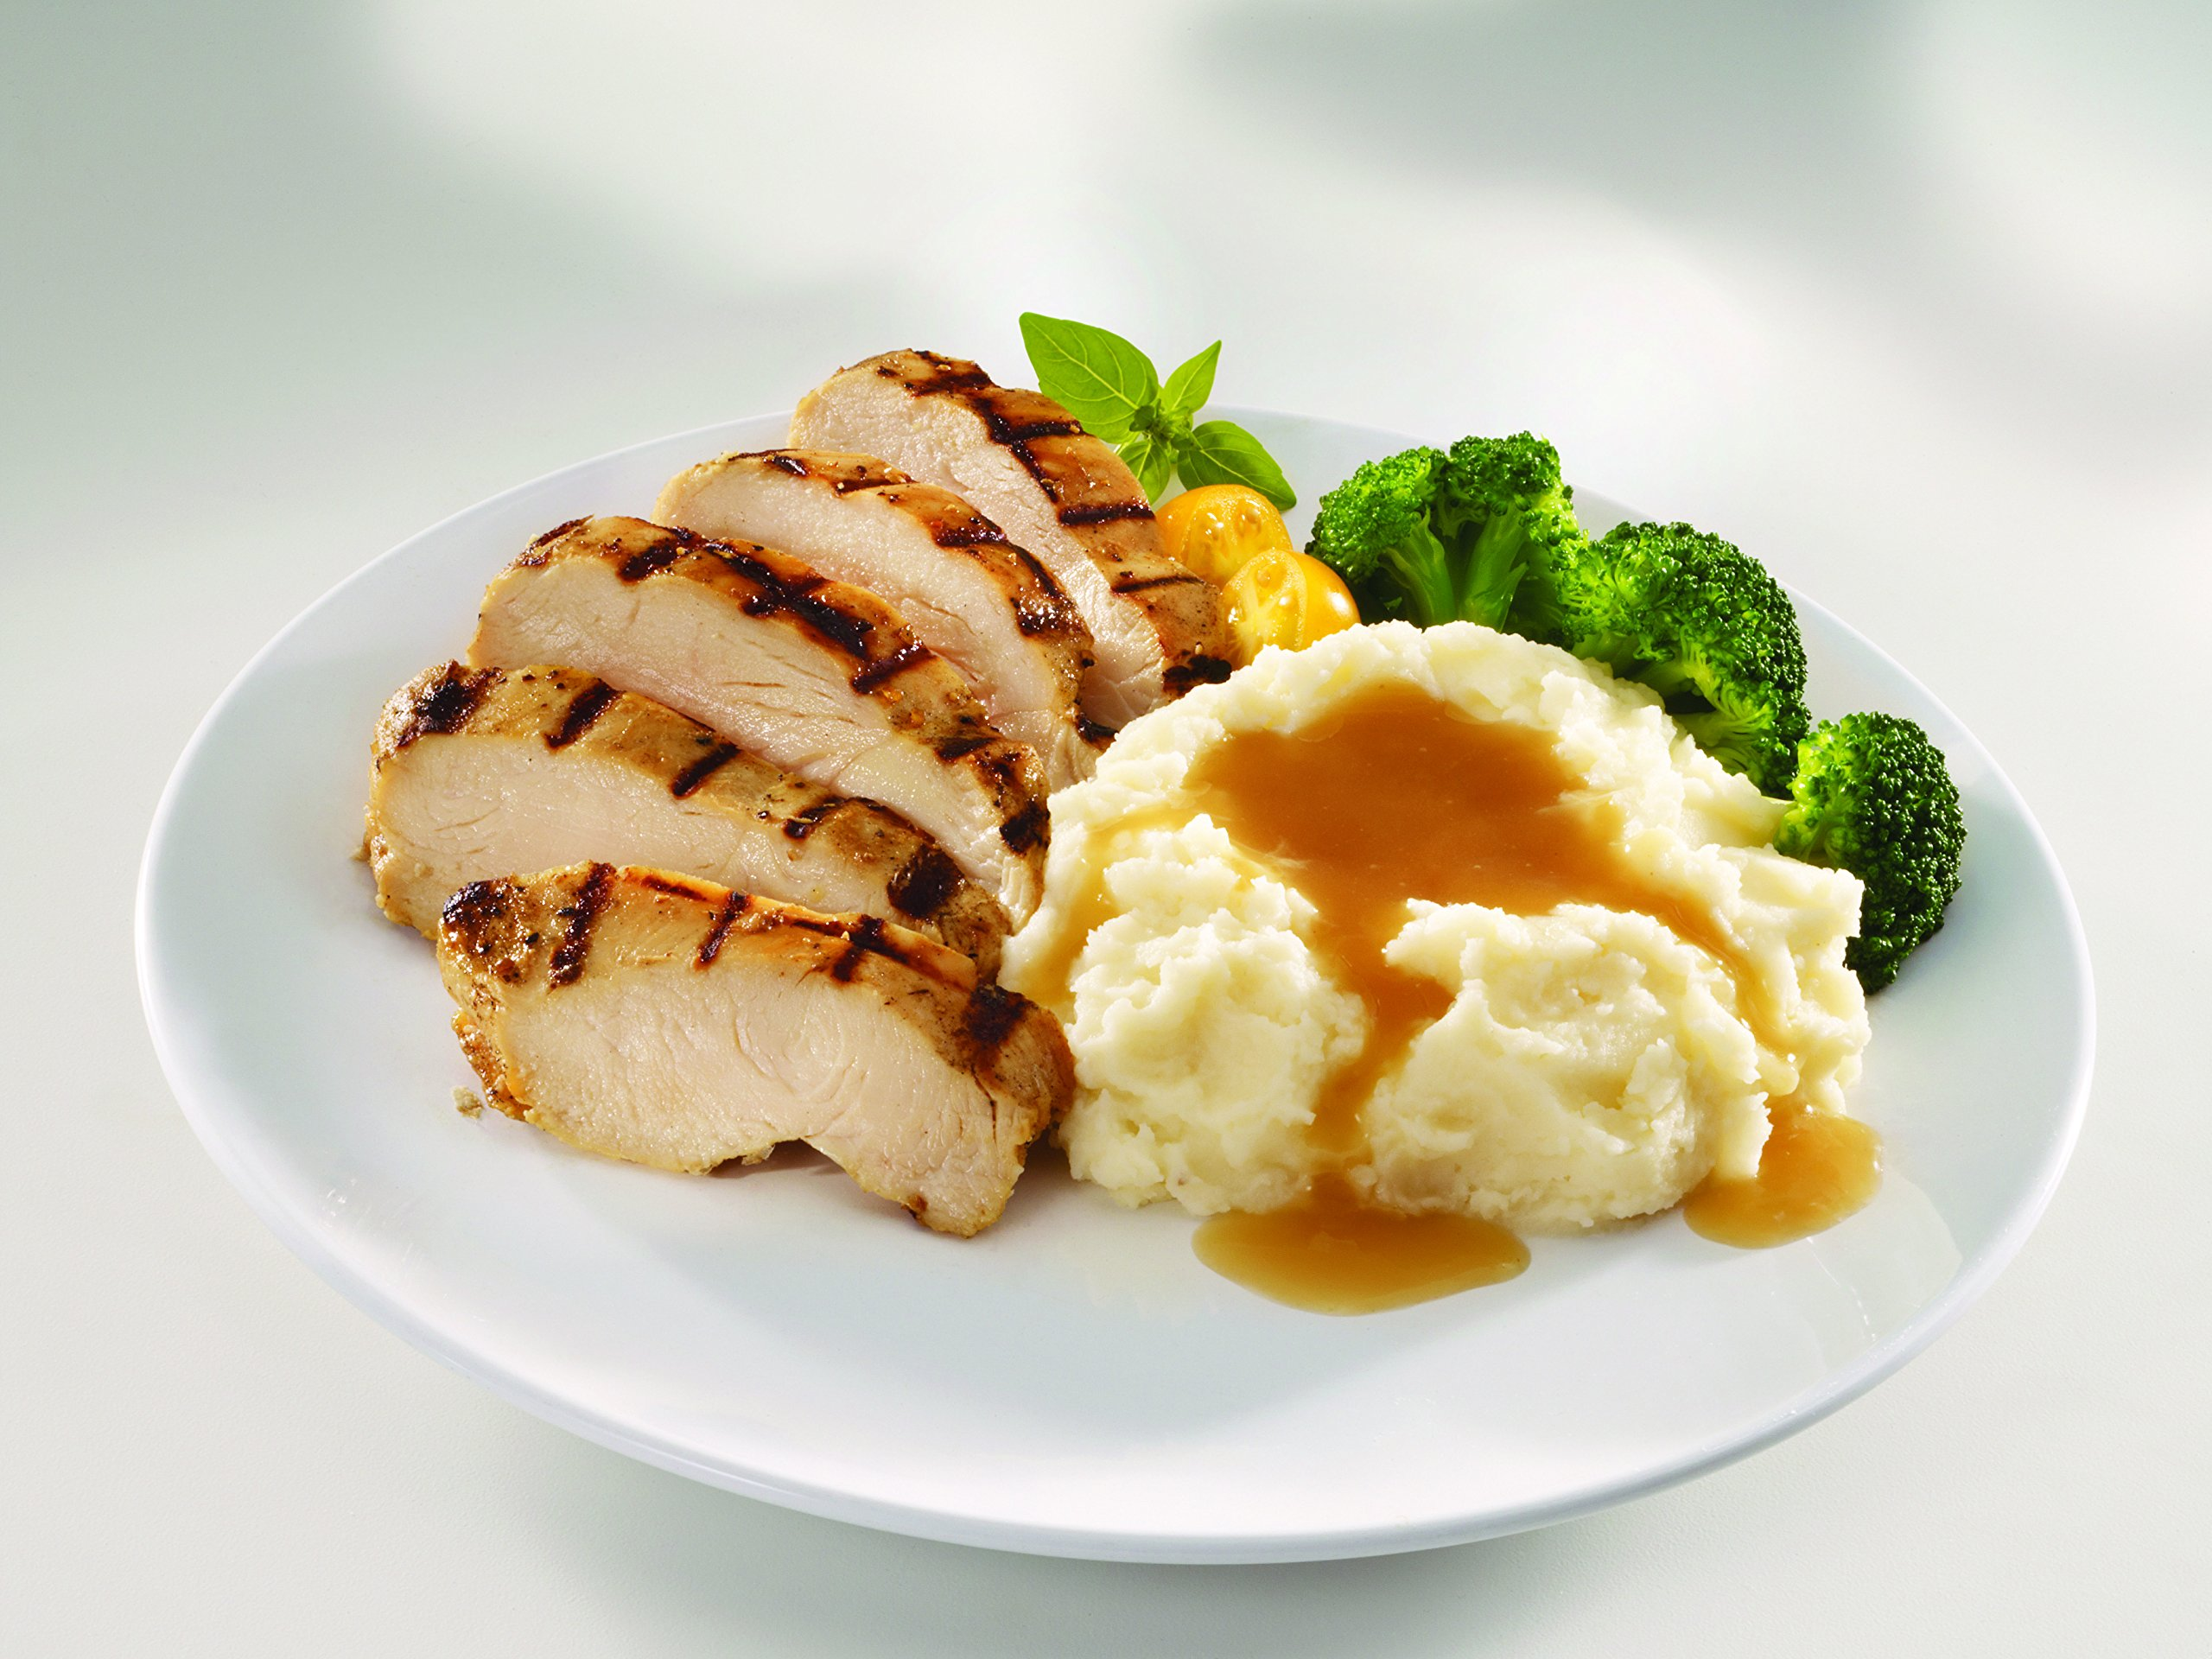 Foothill Farms Gravy Mix Chicken Shelf Stable Add Water Cholesterol Free Fat Free 14 oz. (8 count)